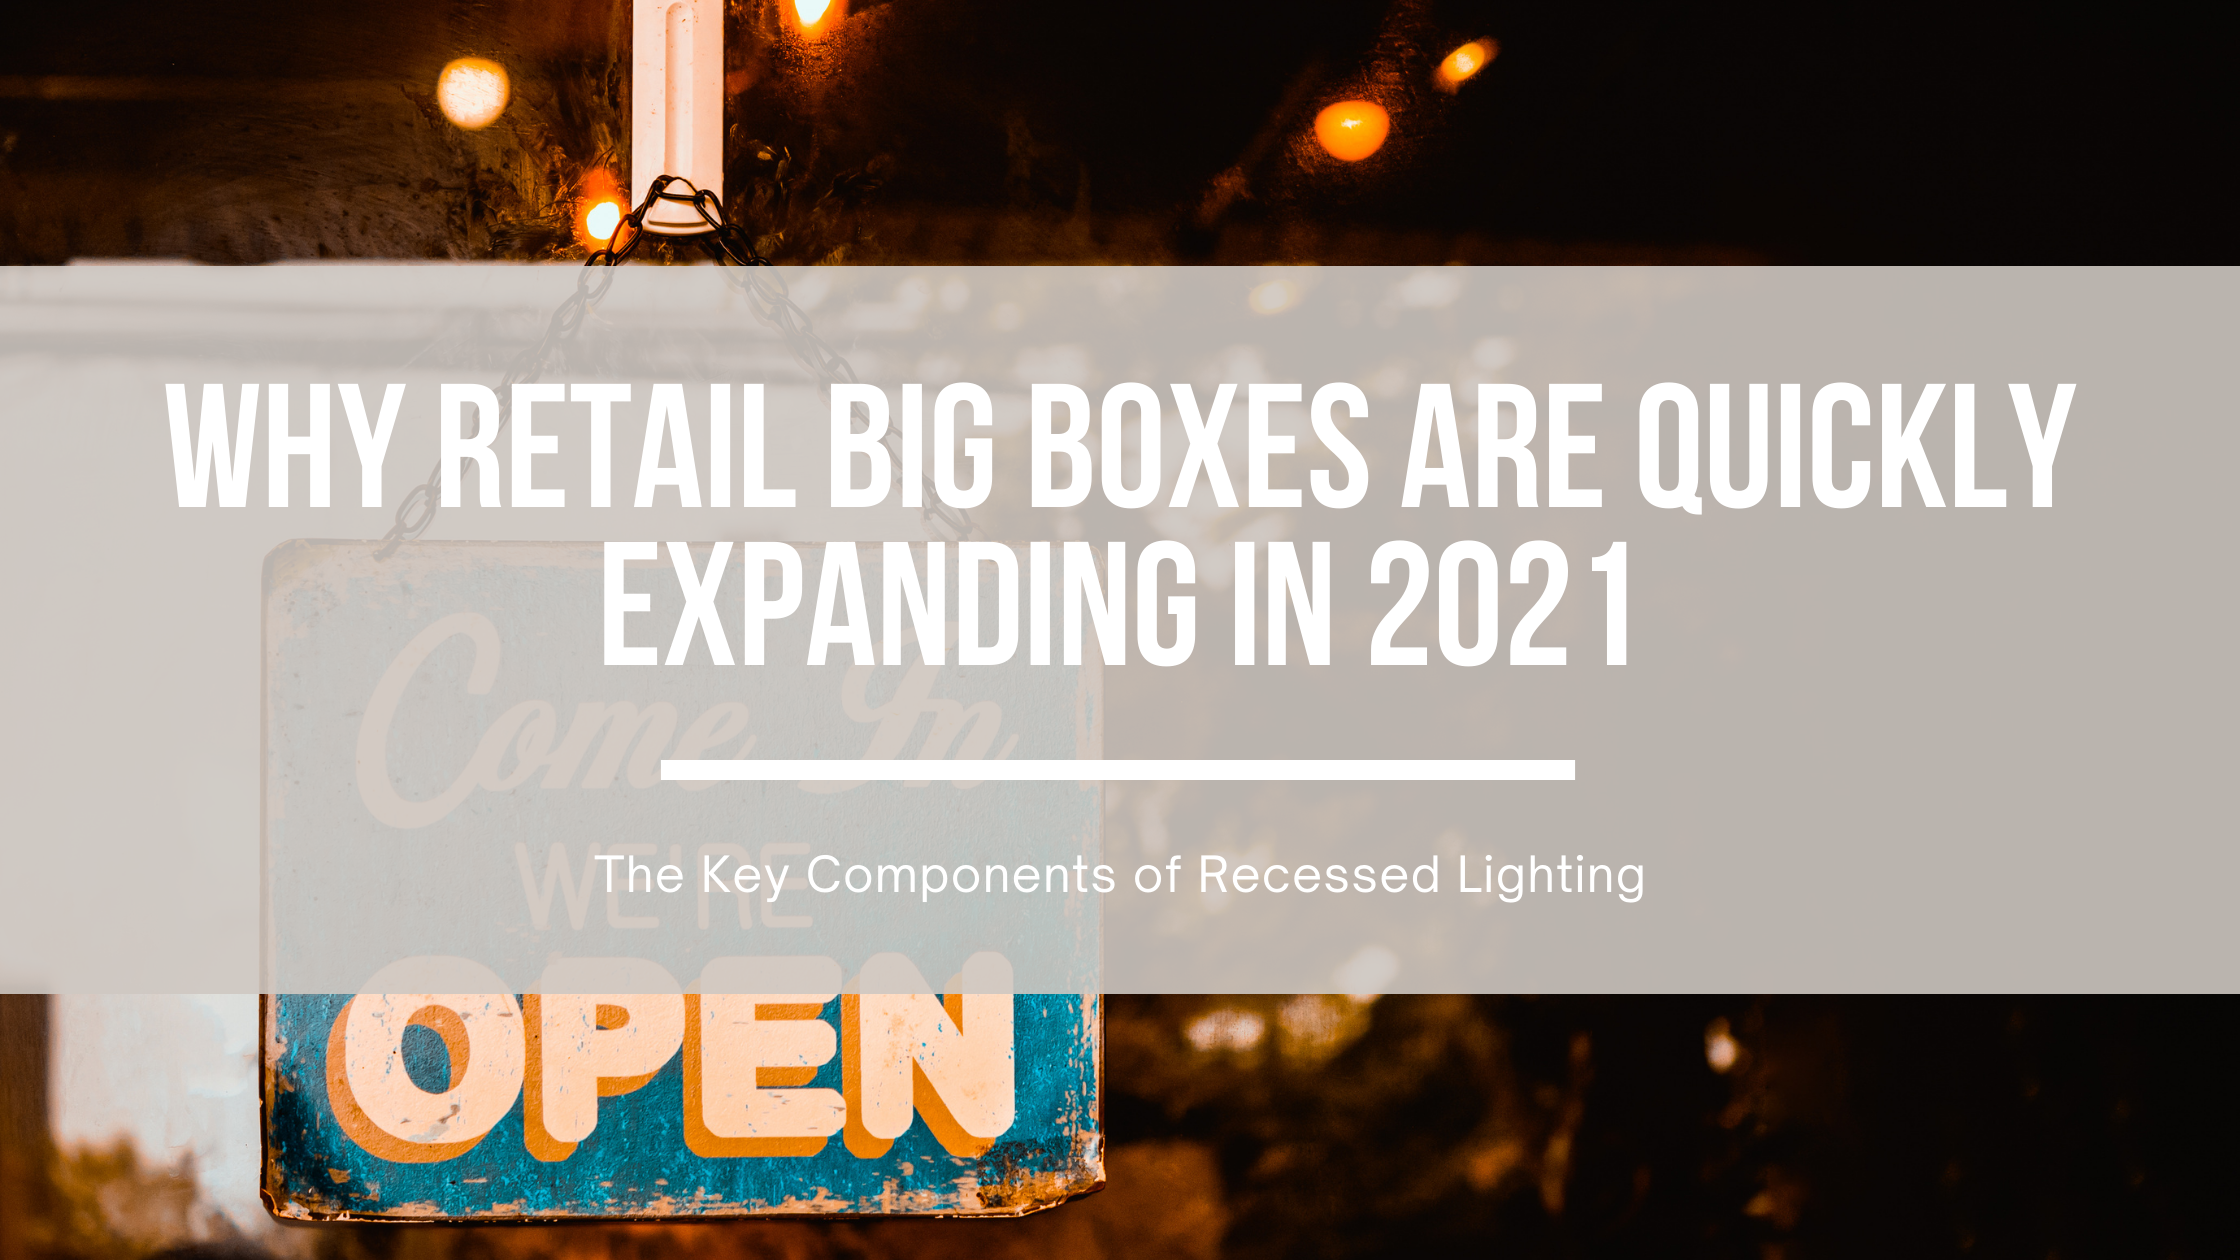 Why Retail Stores Are Expanding in 2021